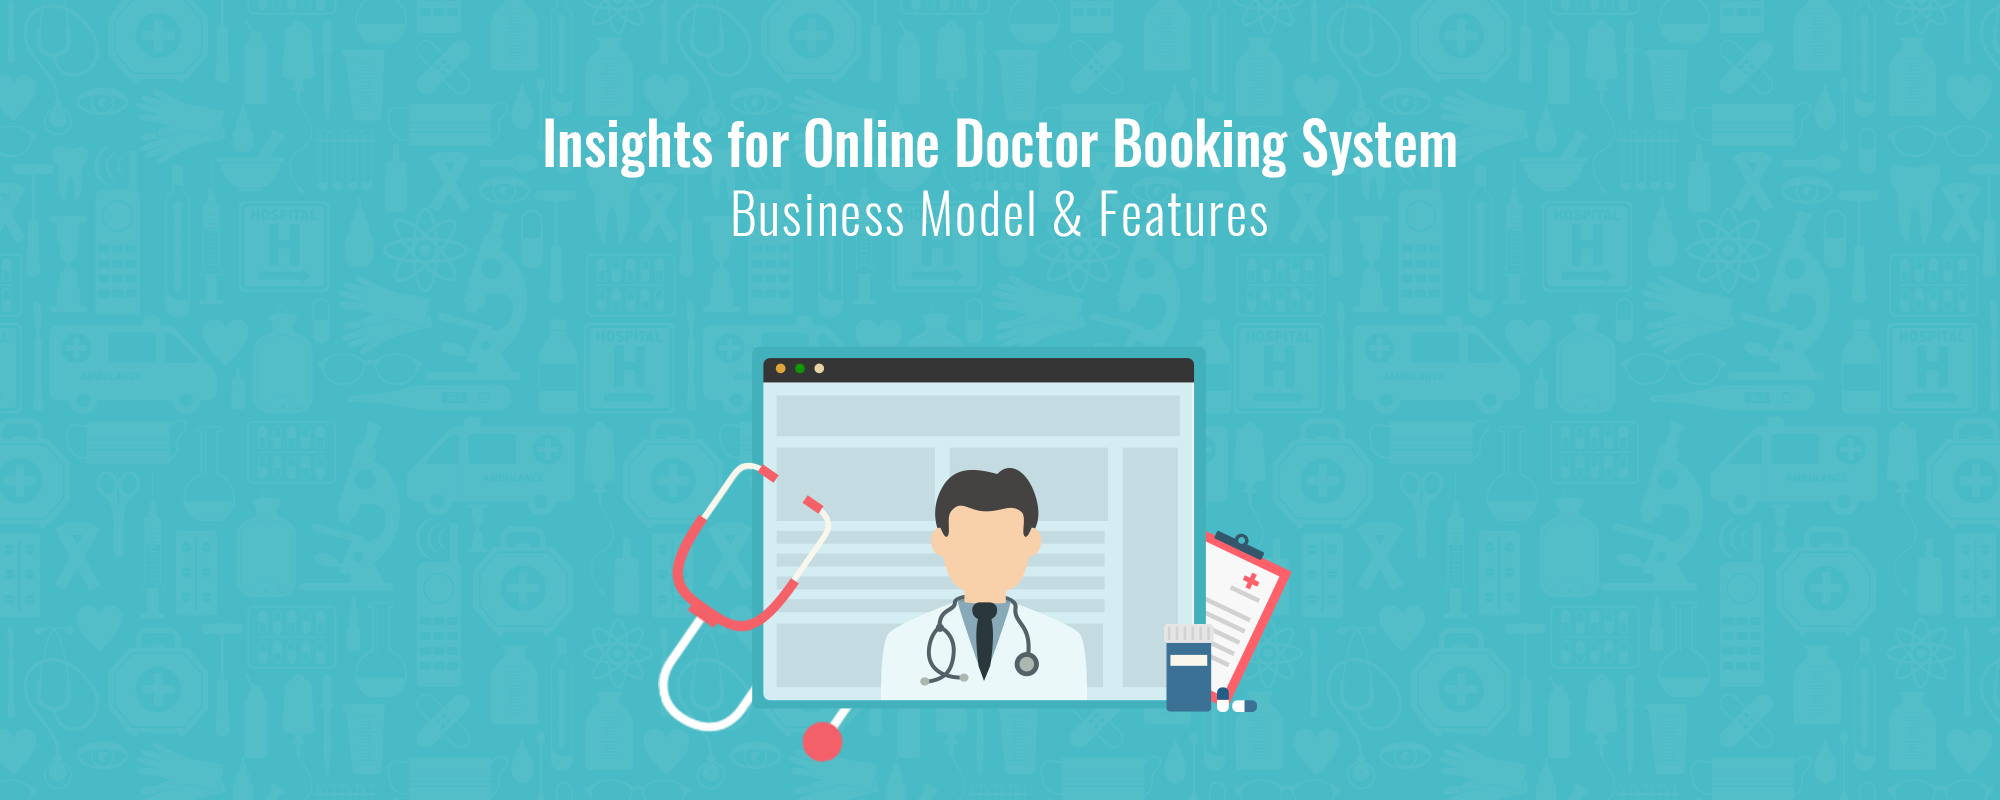 Features Worth Considering to Launch Online Medical Appointment Booking Platform